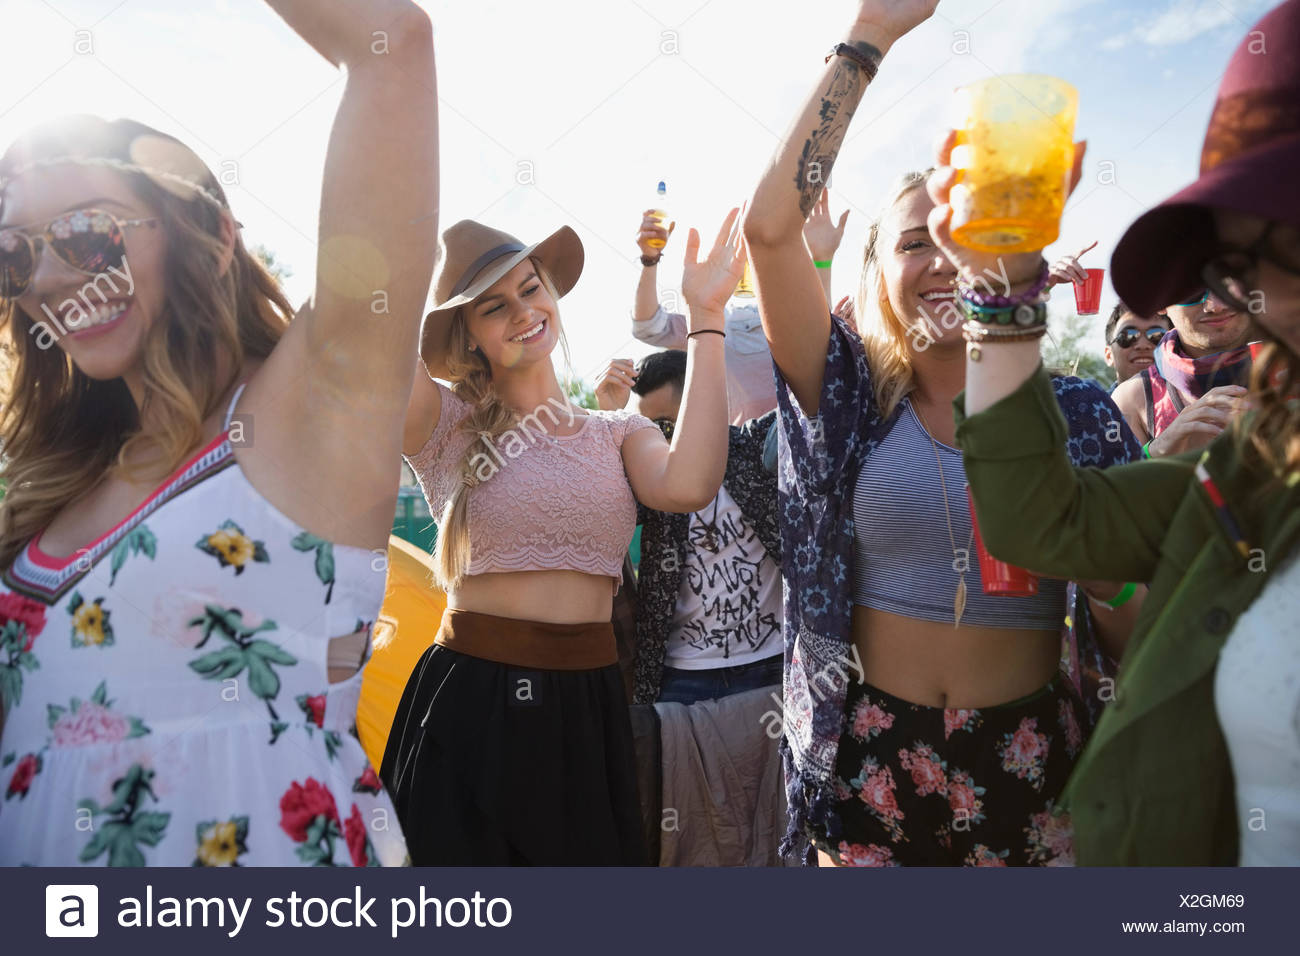 Jeune foule dancing summer music festival Photo Stock